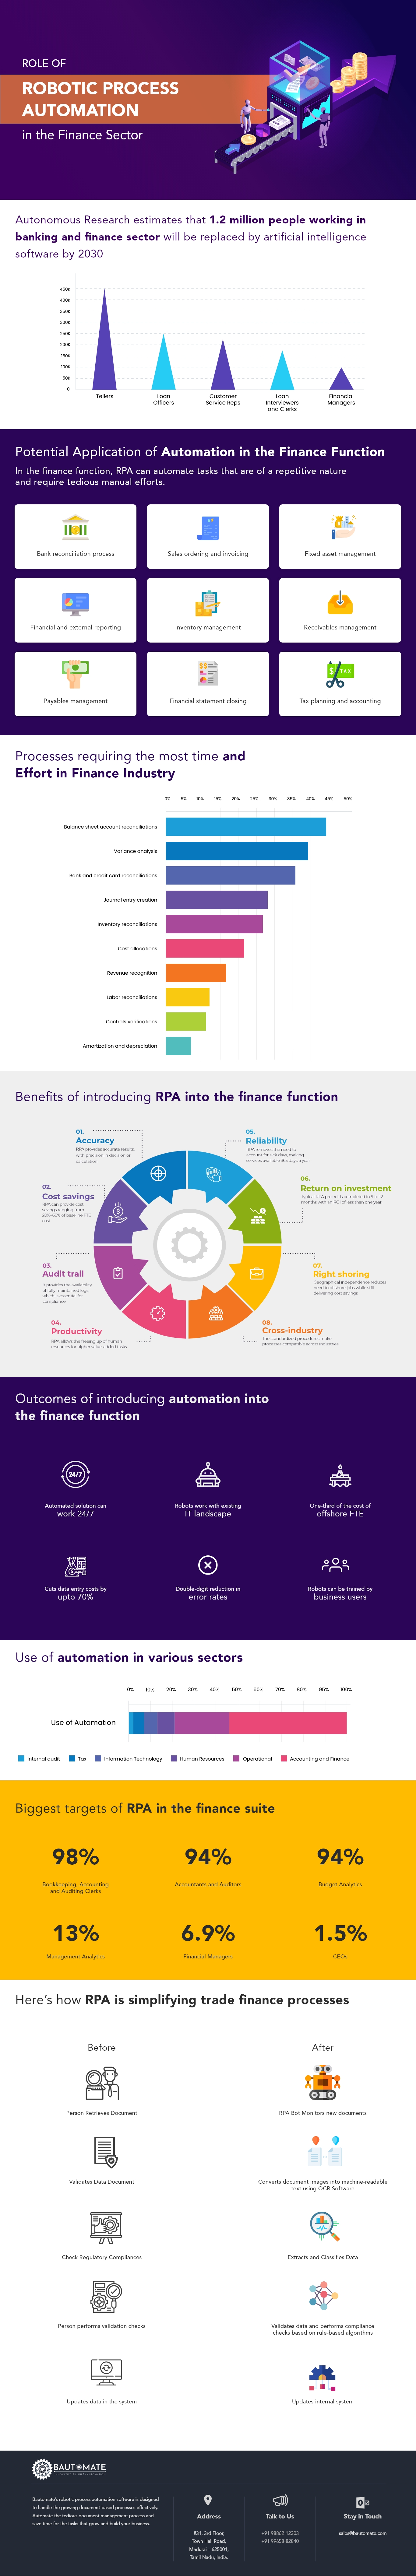 Role of Robotic Process Automation in the Finance Sector - Infographics